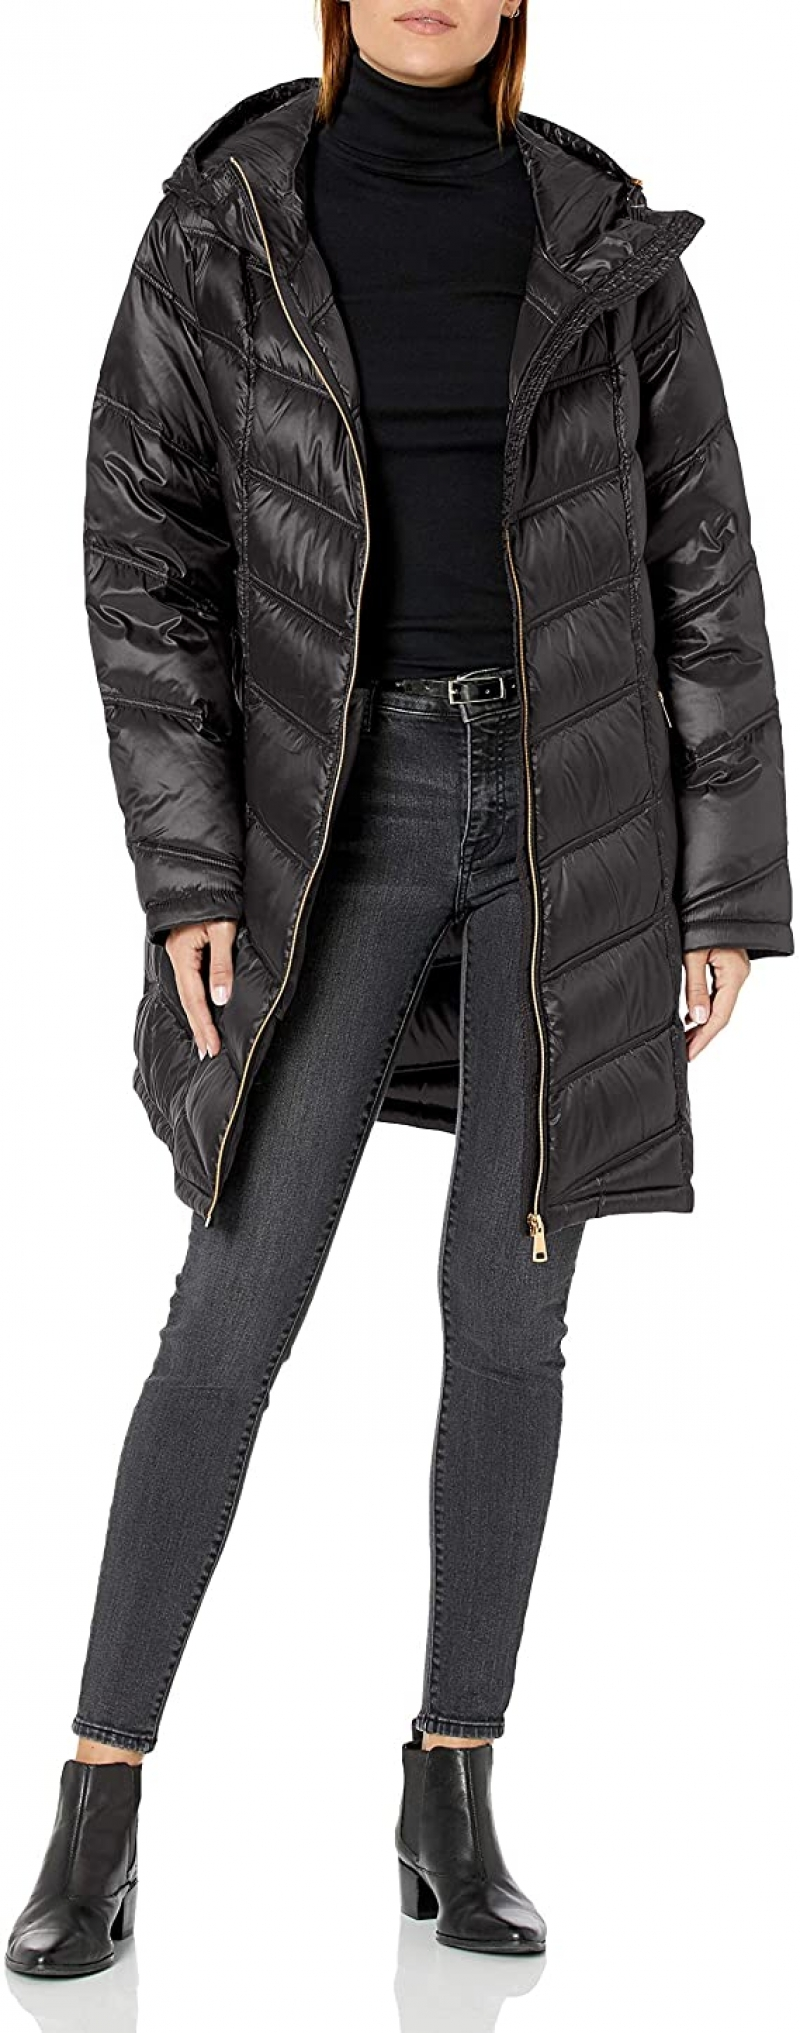 ihocon: Calvin Klein Women's Hooded Chevron Quilted Packable Down Jacket 女士連帽羽絨長夾克